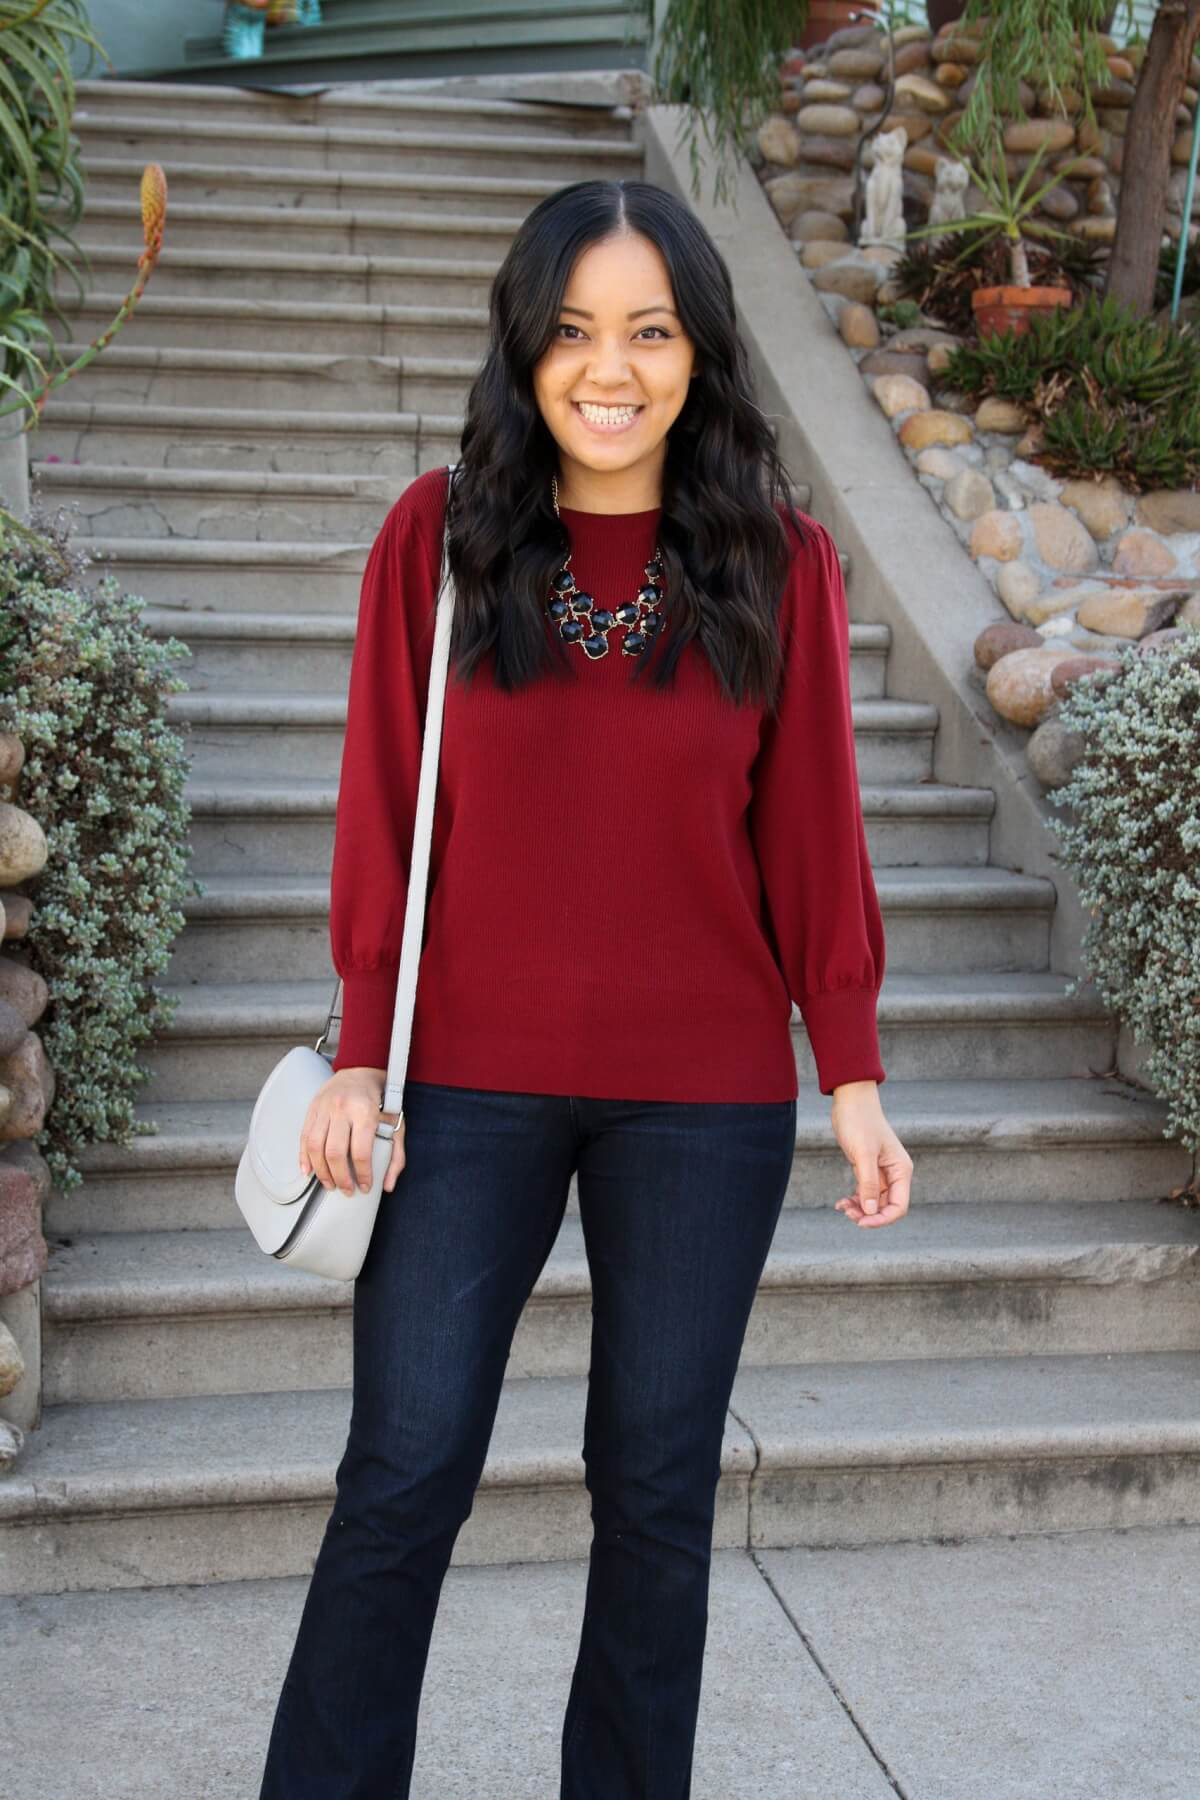 Fall Bootcut Jeans Outfit: bootcut jeans + red sweater + grey crossbody bag + black statement necklace